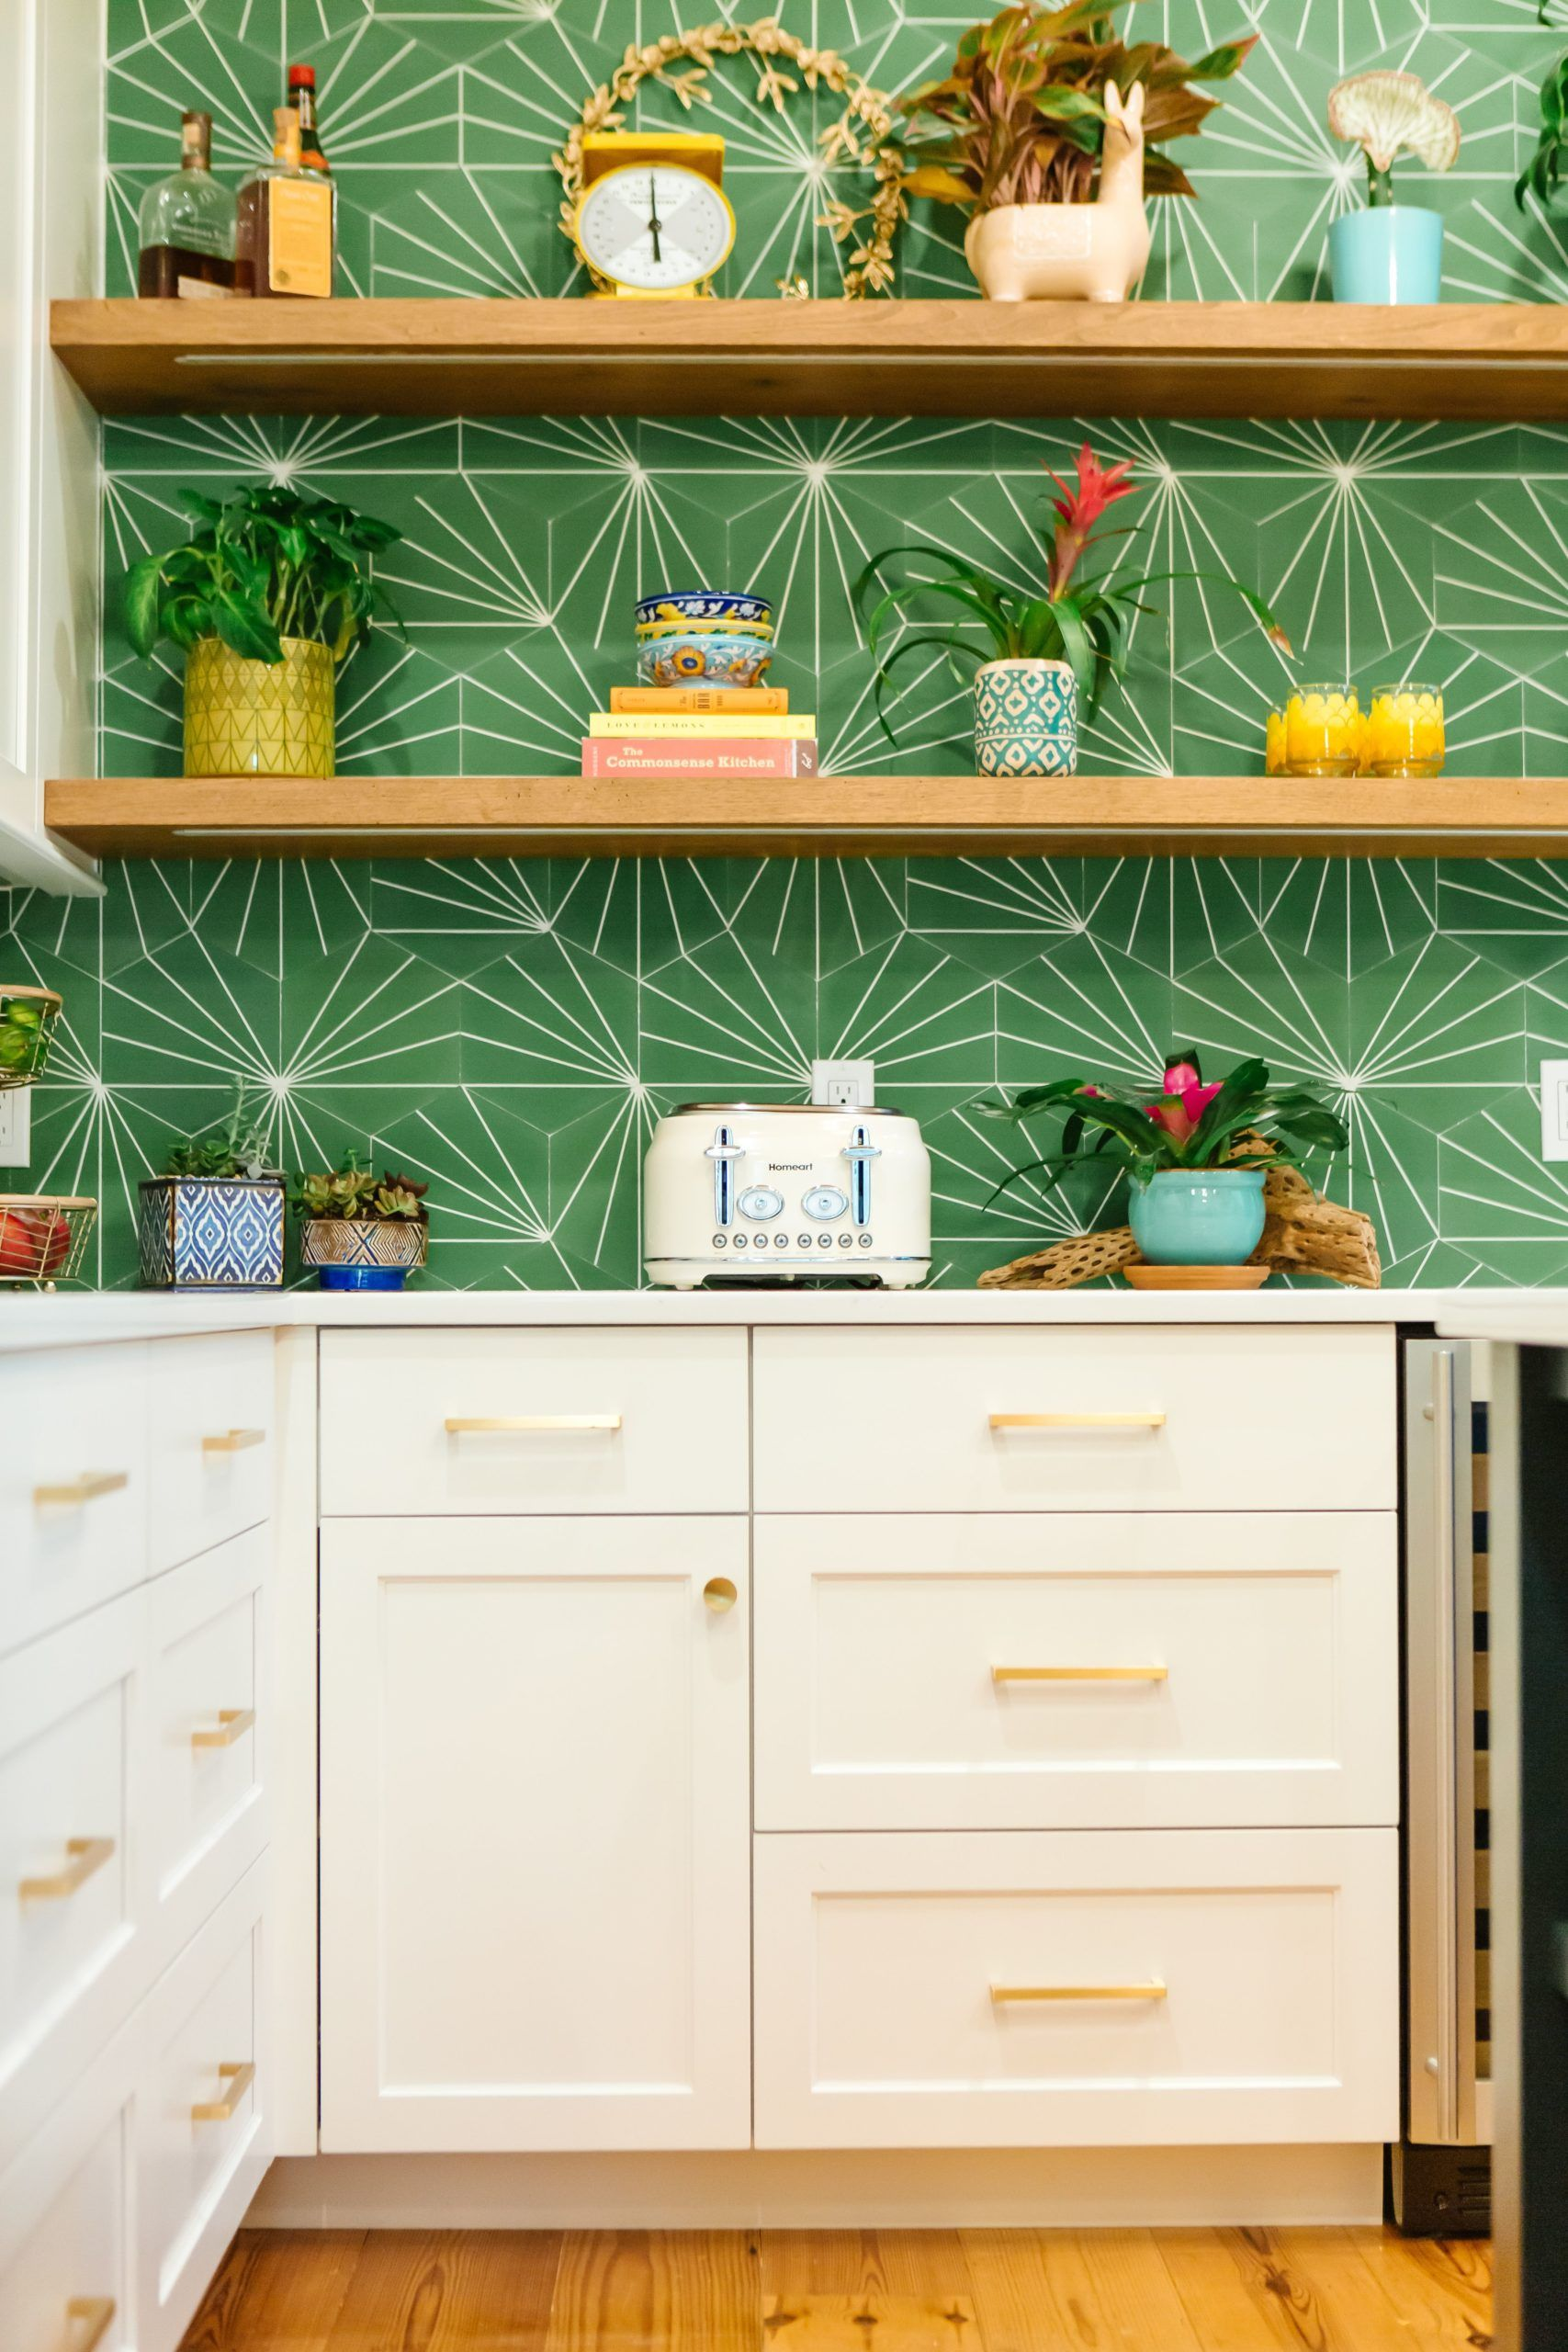 - Colorful Kitchen Backsplash Cement Tile, #Backsplash #Cement